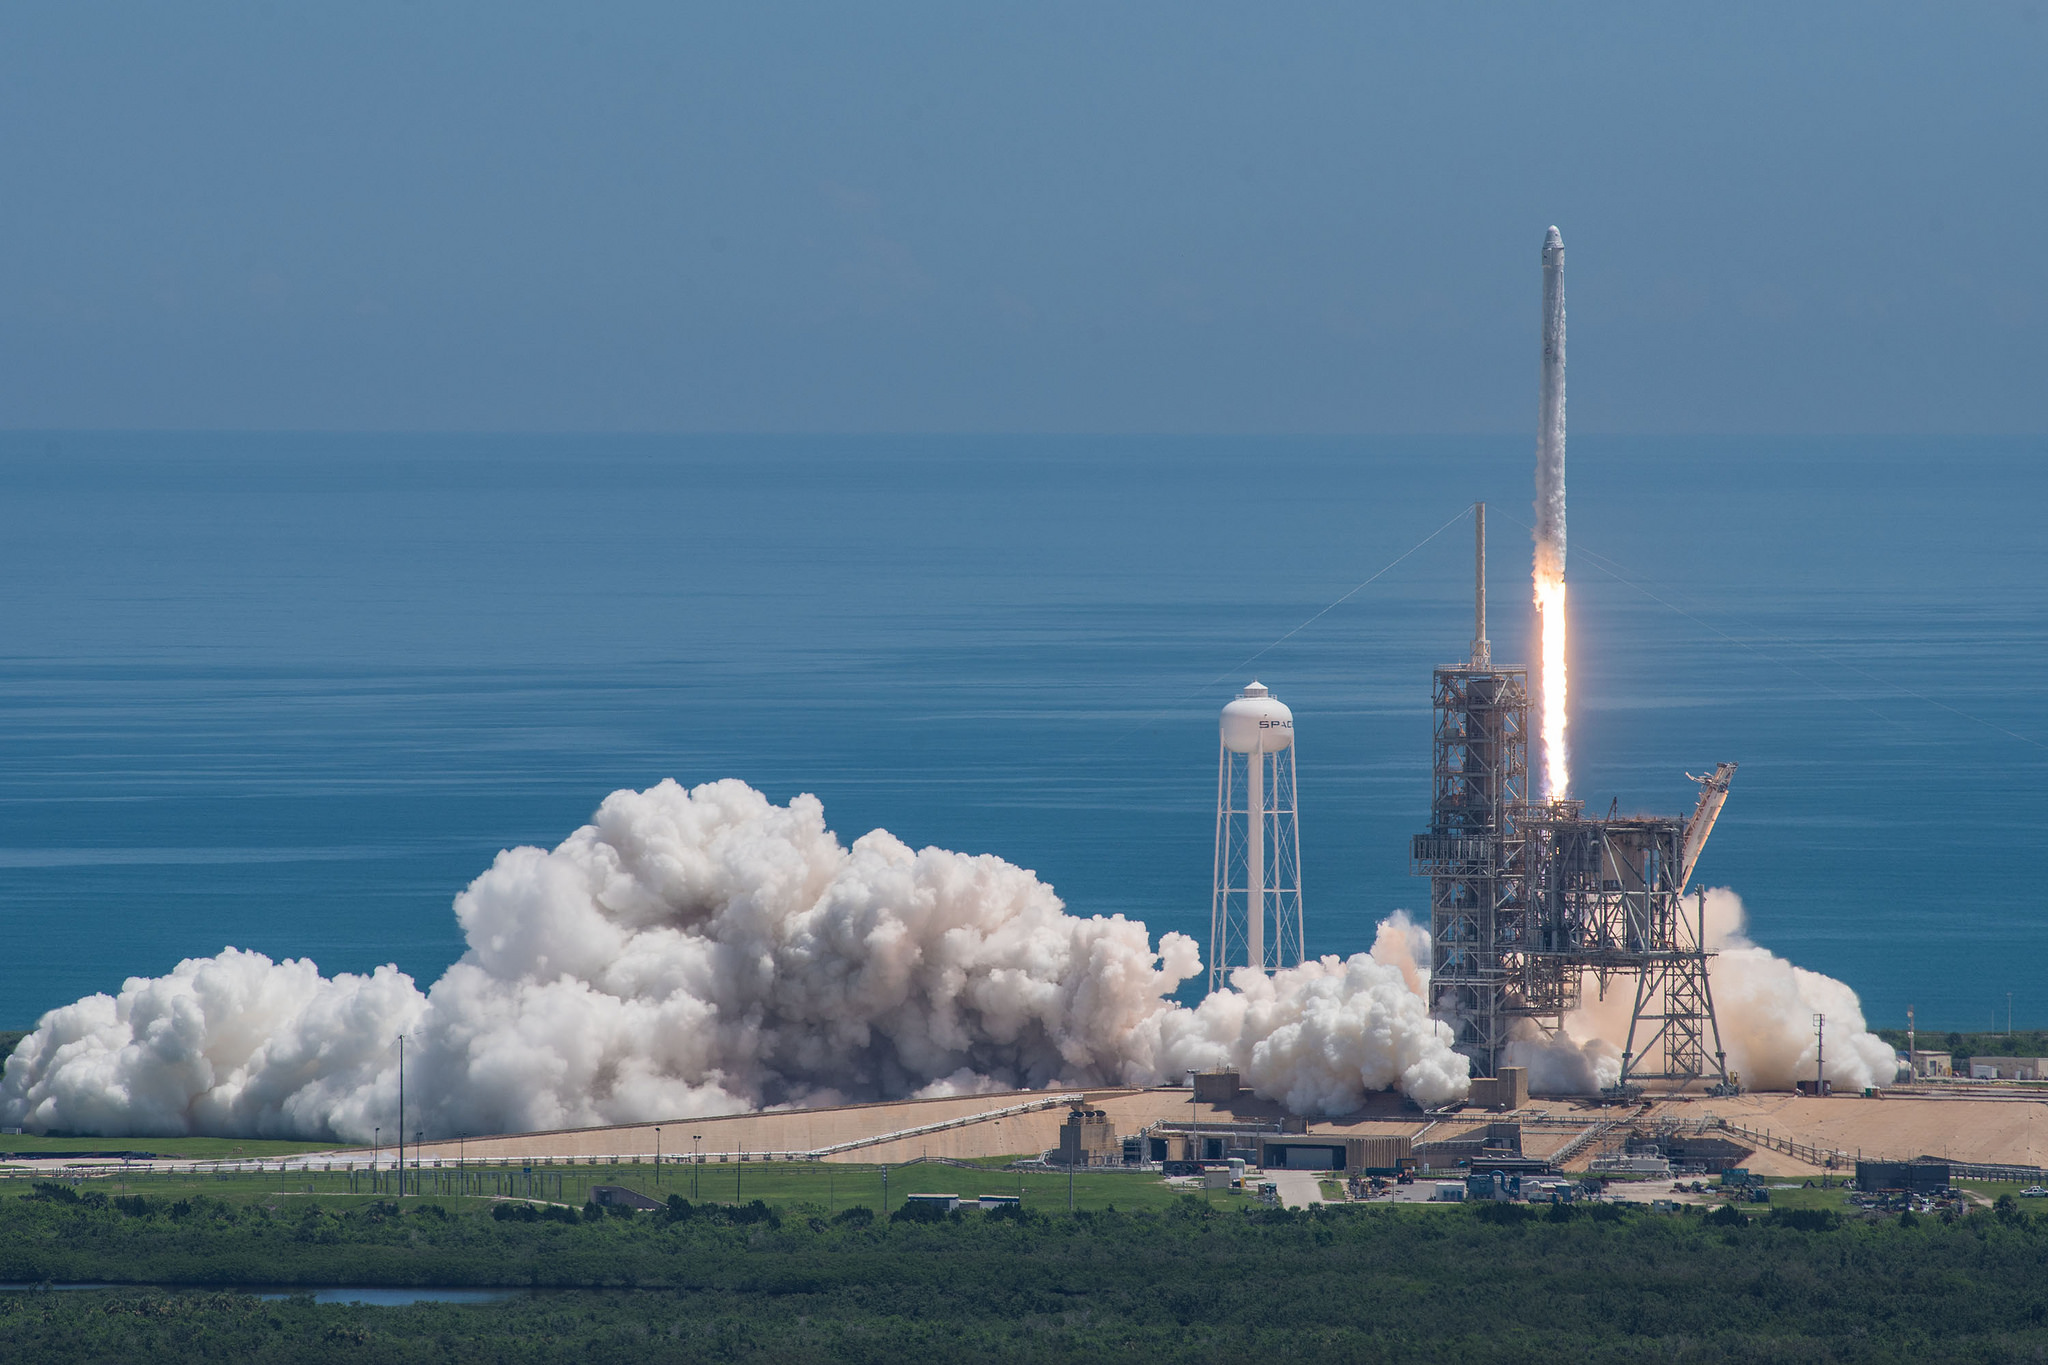 SpaceX launches a Falcon 9 with the CRS-12 Dragon capsule on top. Photo Credit: SpaceX